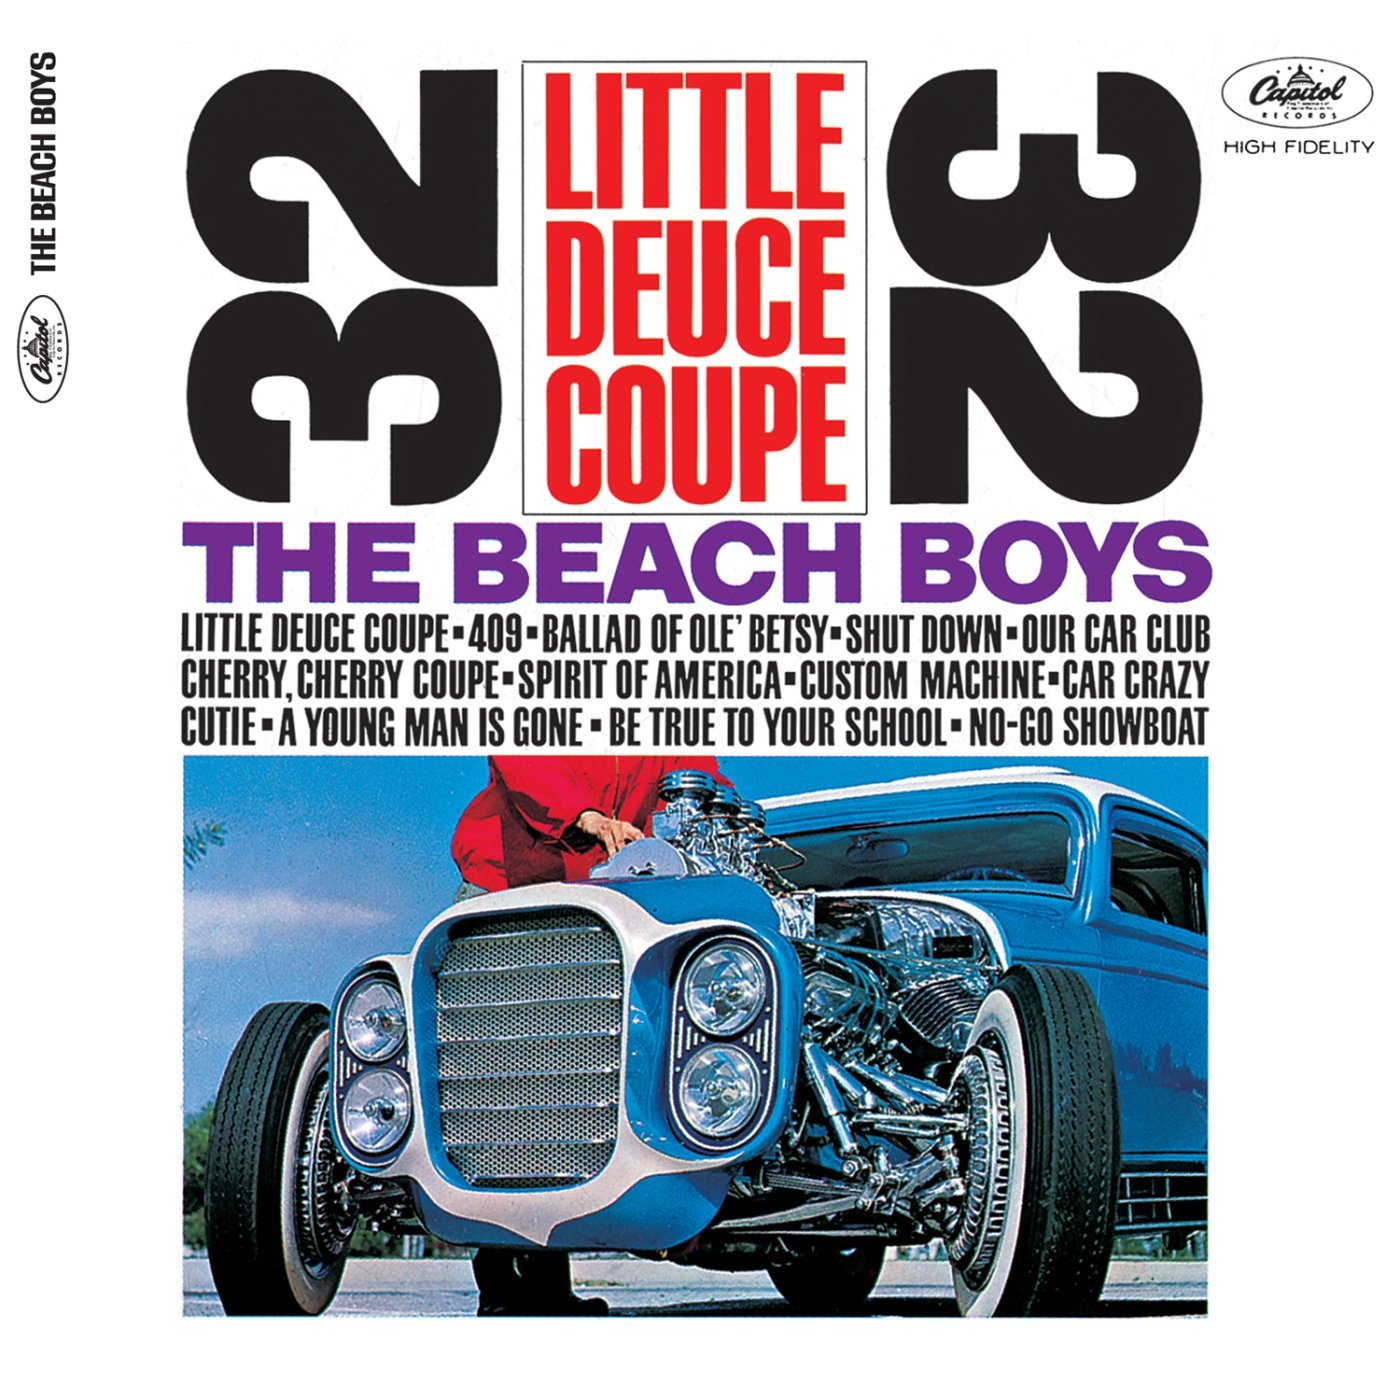 Little Deuce Coupe (Mono & Stereo Remasters) by EMI MKTG